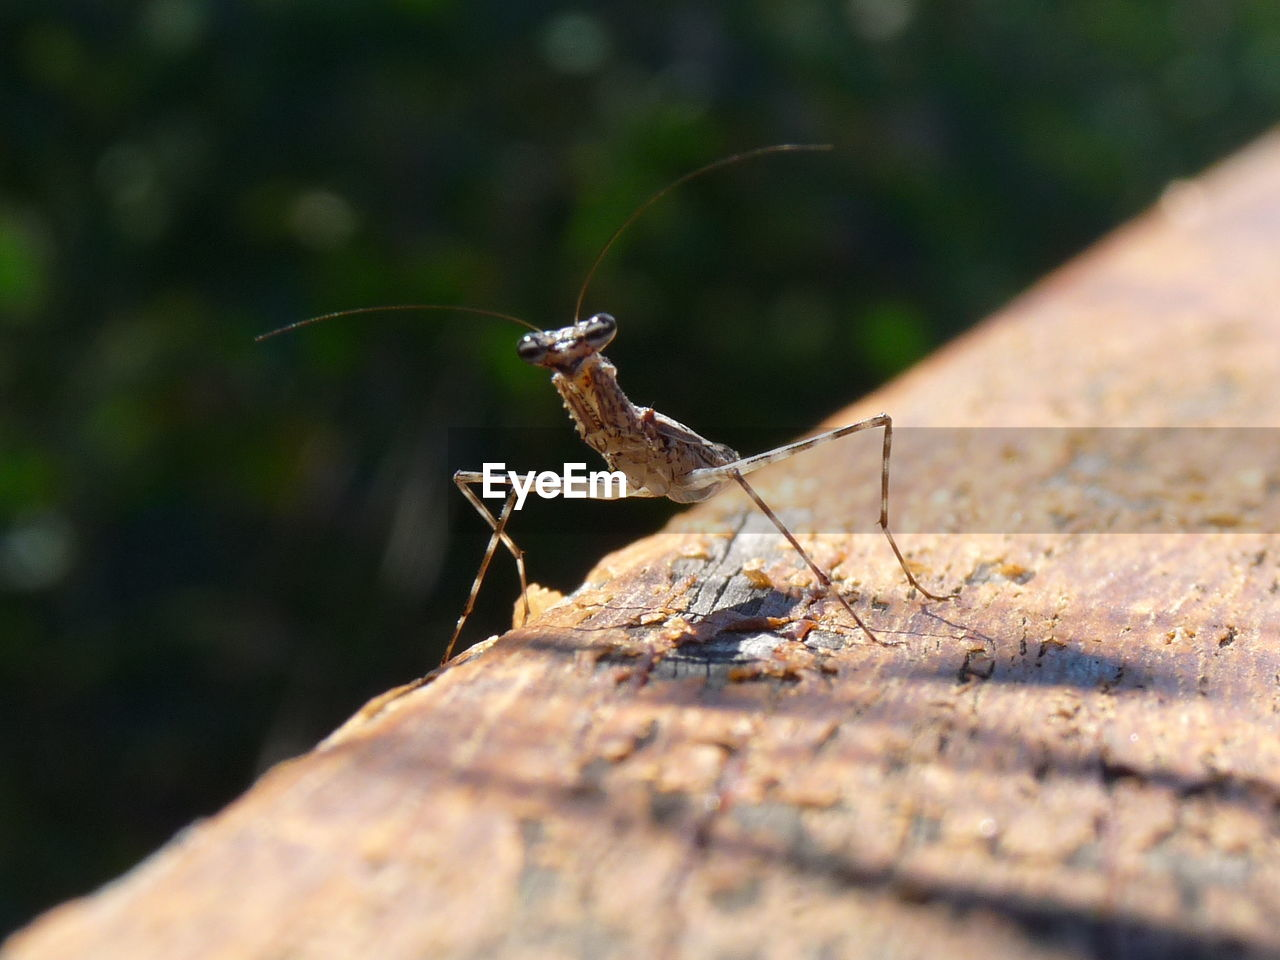 selective focus, invertebrate, one animal, animal wildlife, nature, animals in the wild, insect, individuality, people, wild, vitality, environment, outdoors, opportunity, freedom, day, sunlight, small